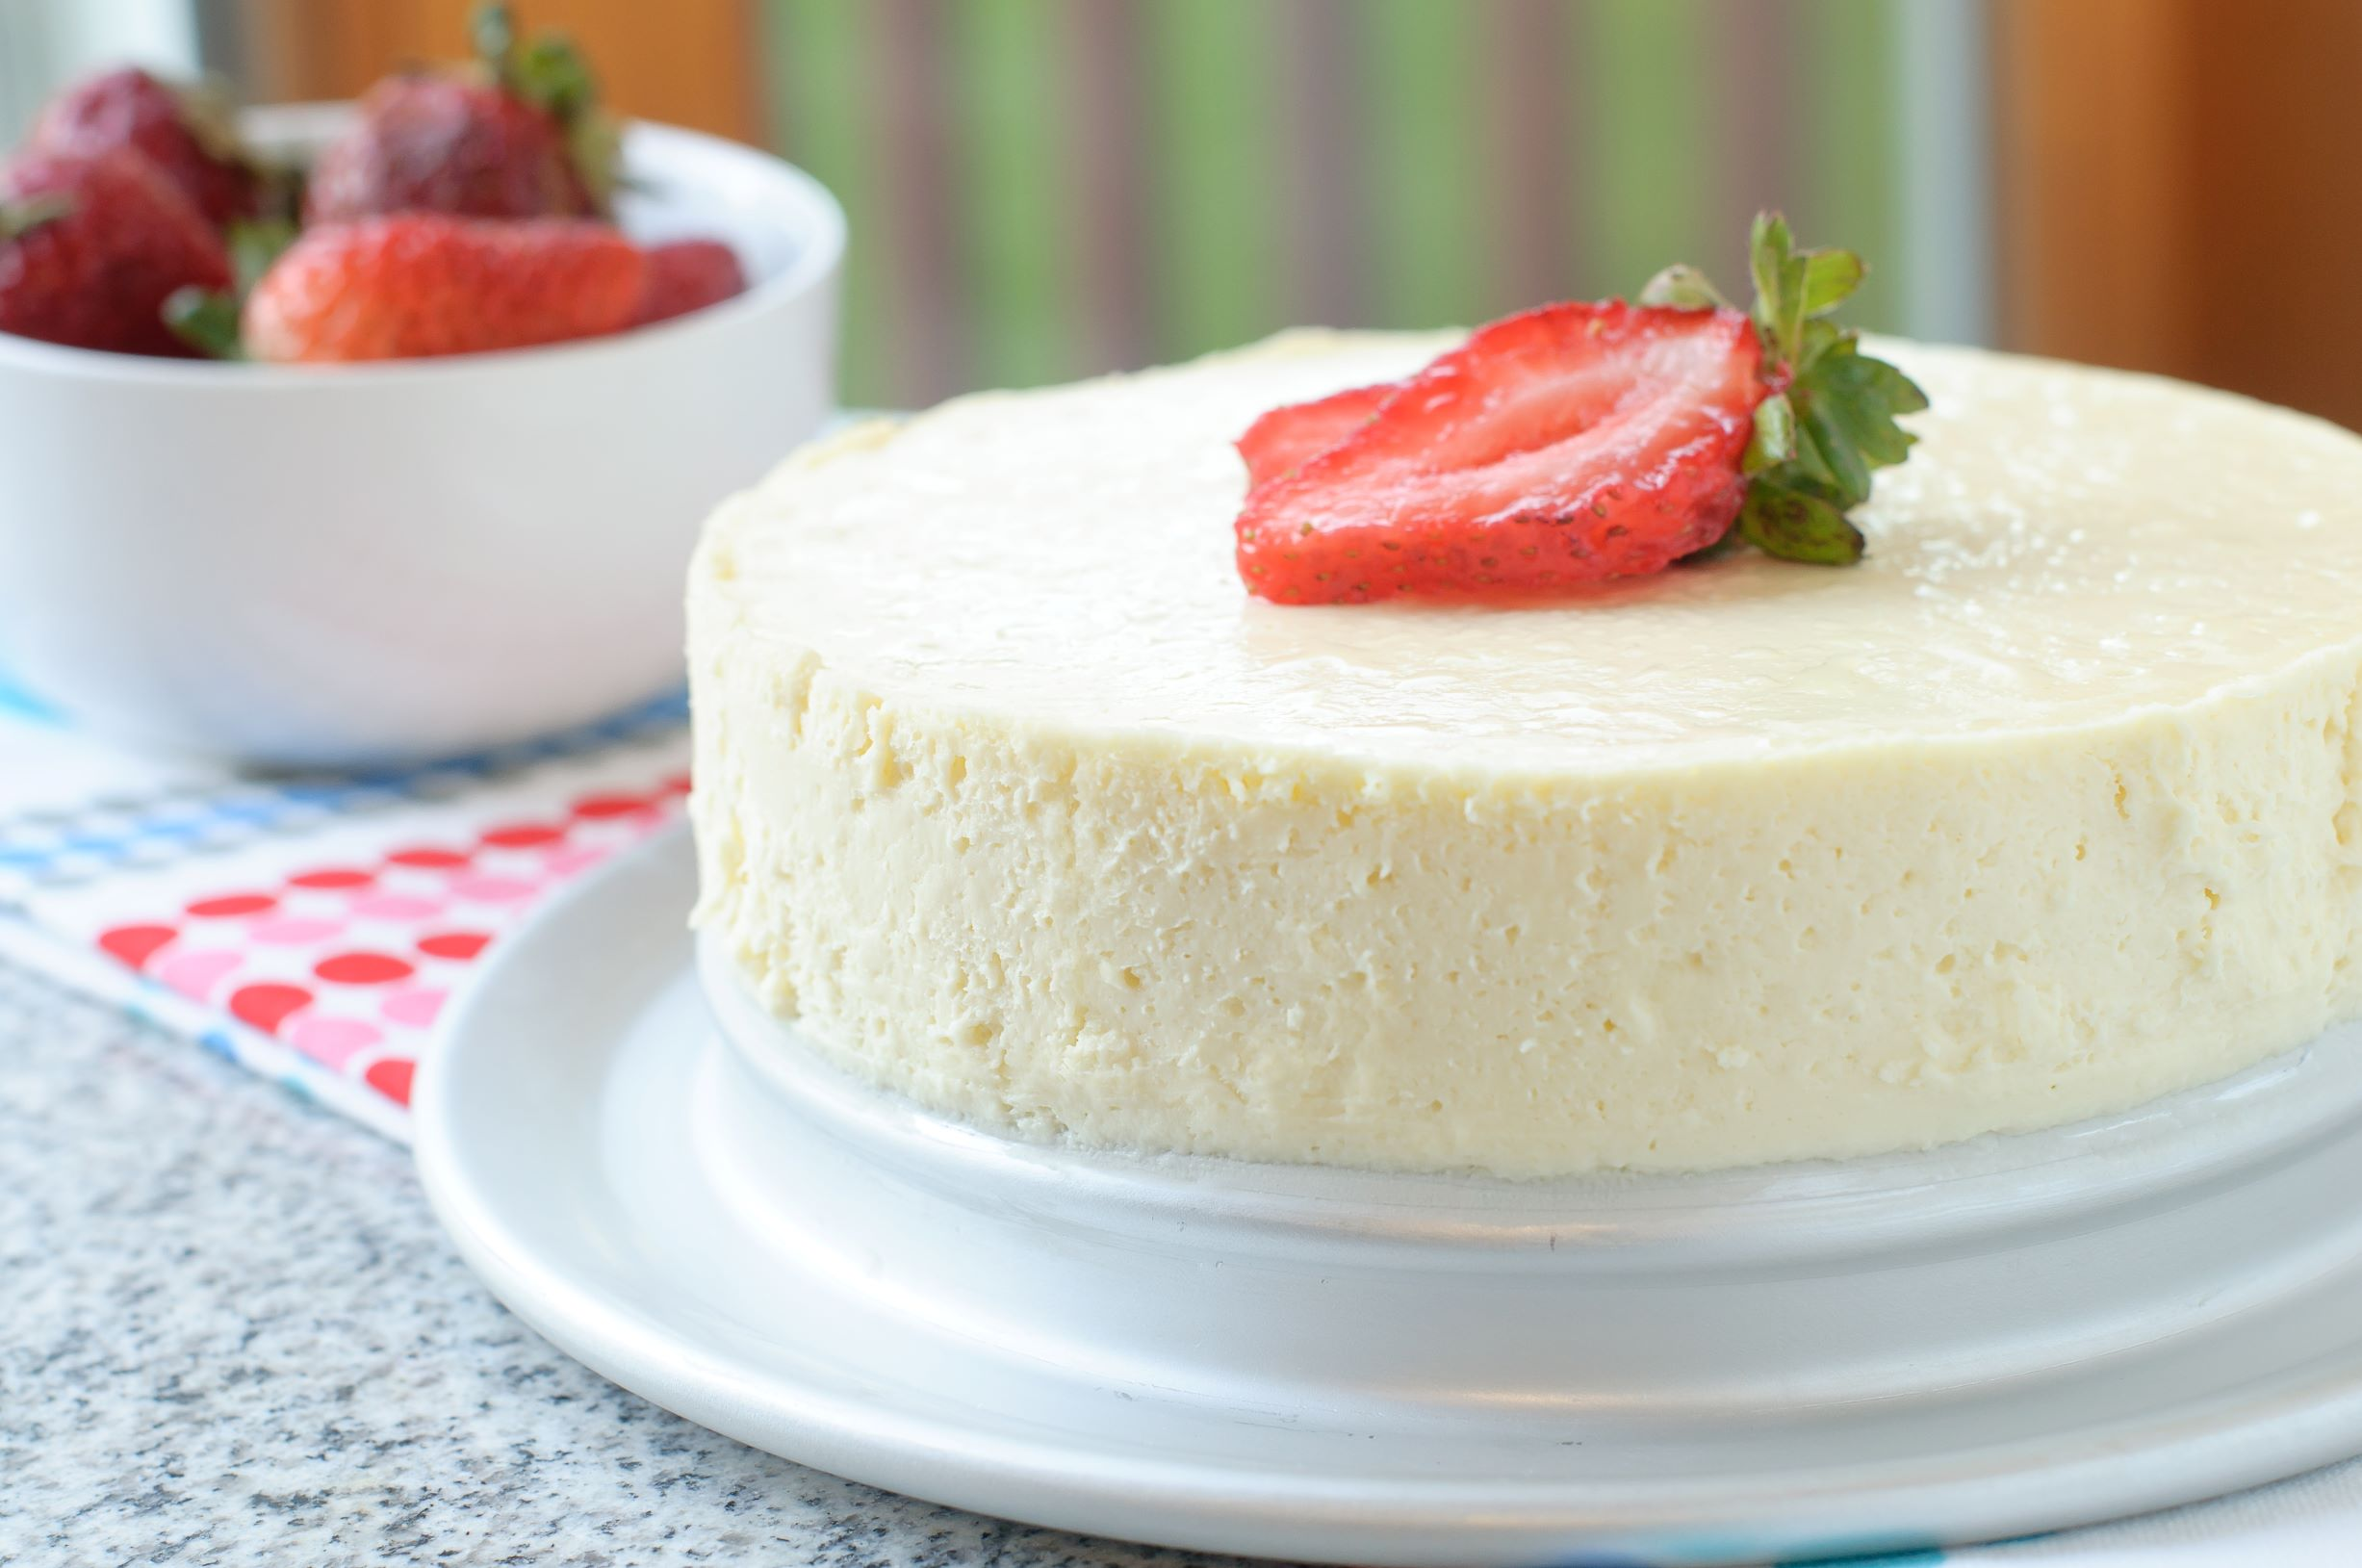 Crustless Creamy Cheesecake Recipe